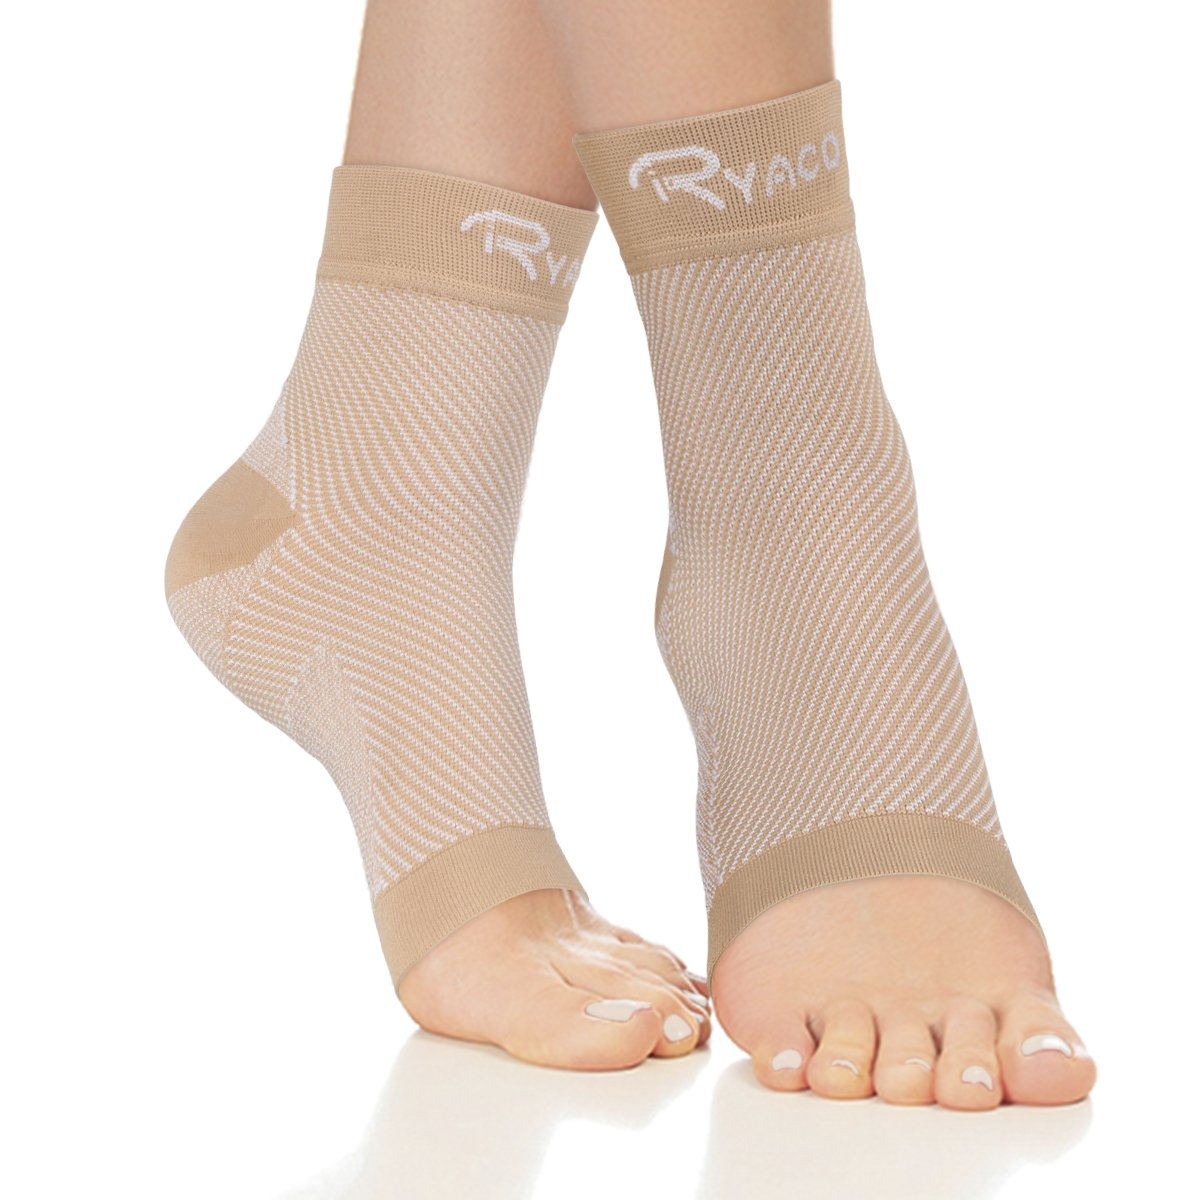 77cf8518a4 Ankle Brace Socks Foot Doc Plantar Fasciitis Arch Support Foot ...